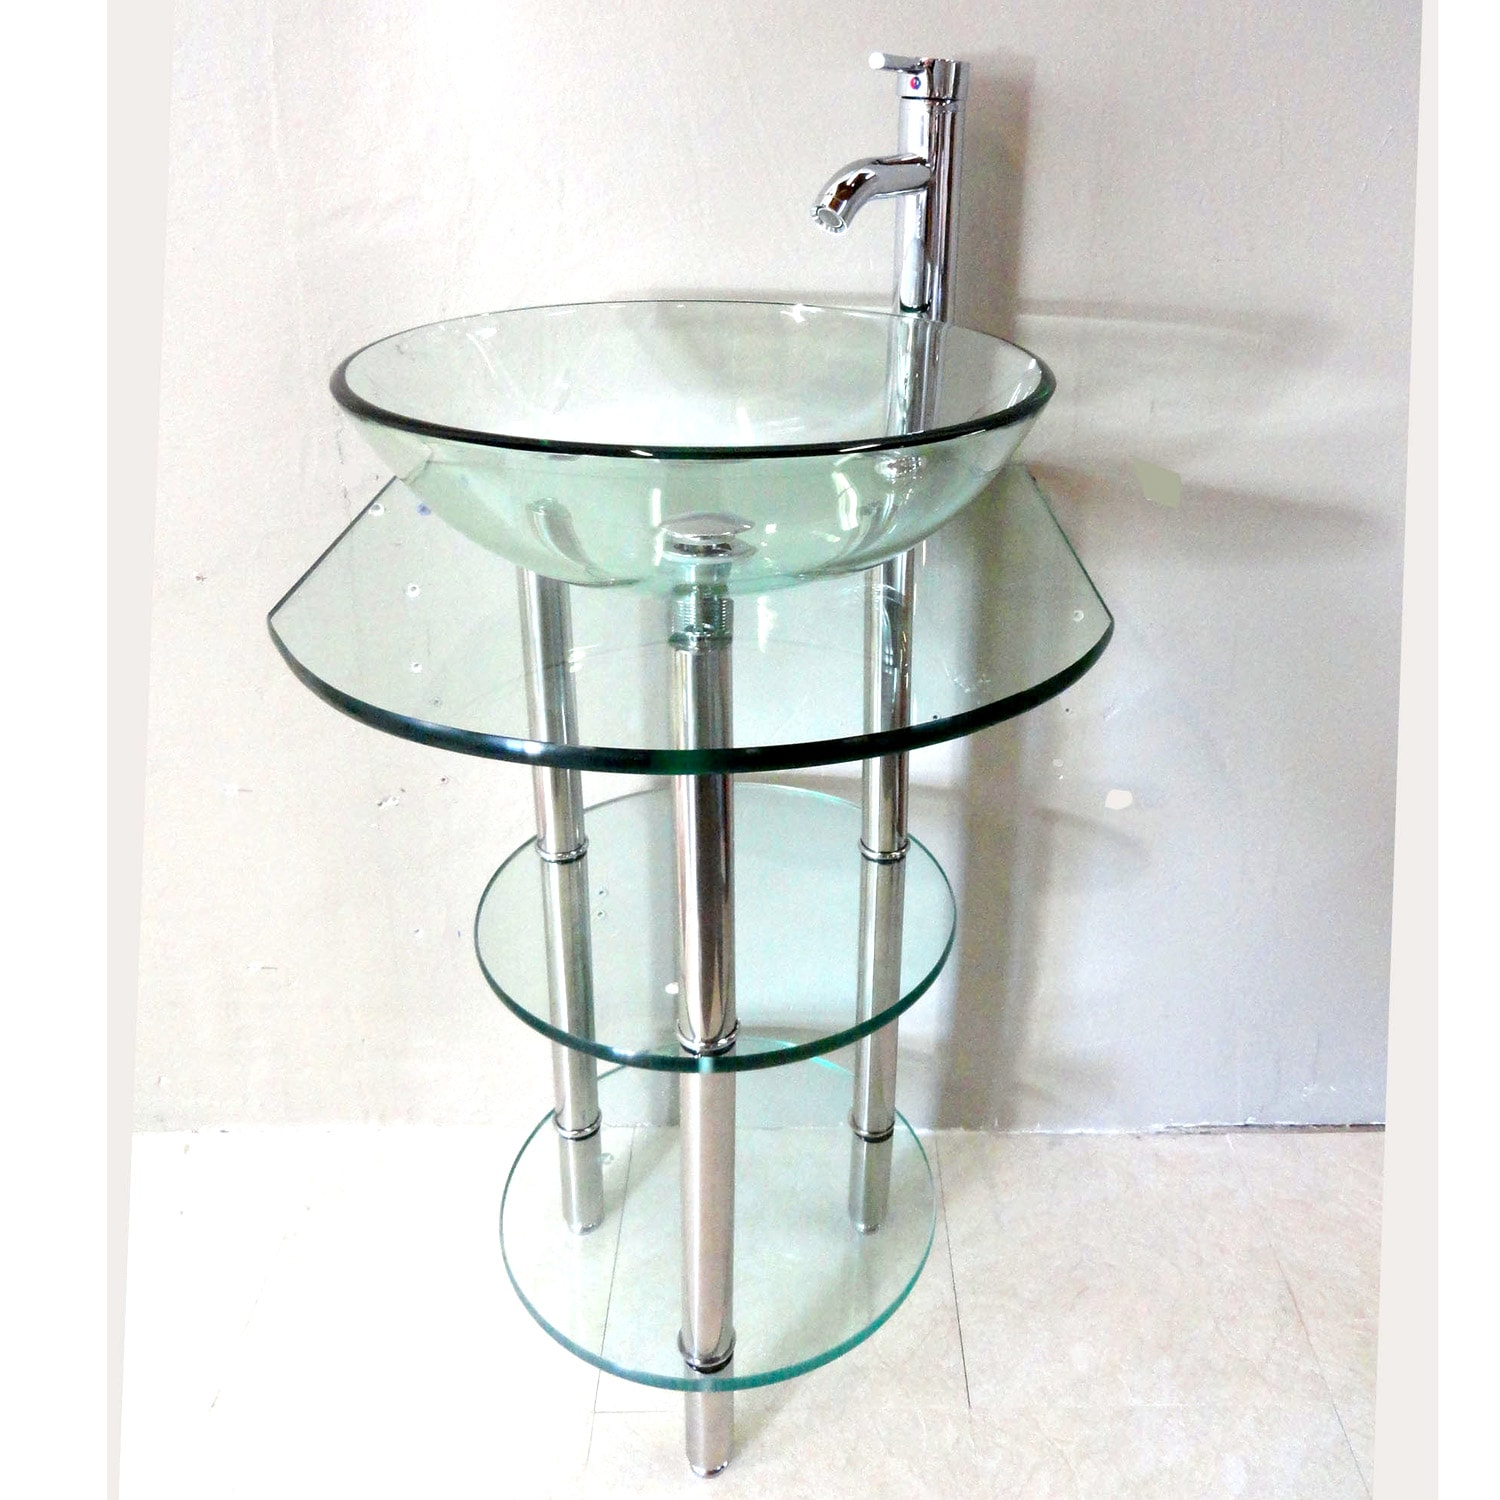 Sink Glass : ... Bathroom Vanity Pedestal and Frosted Glass Vessel Sink Combo Set